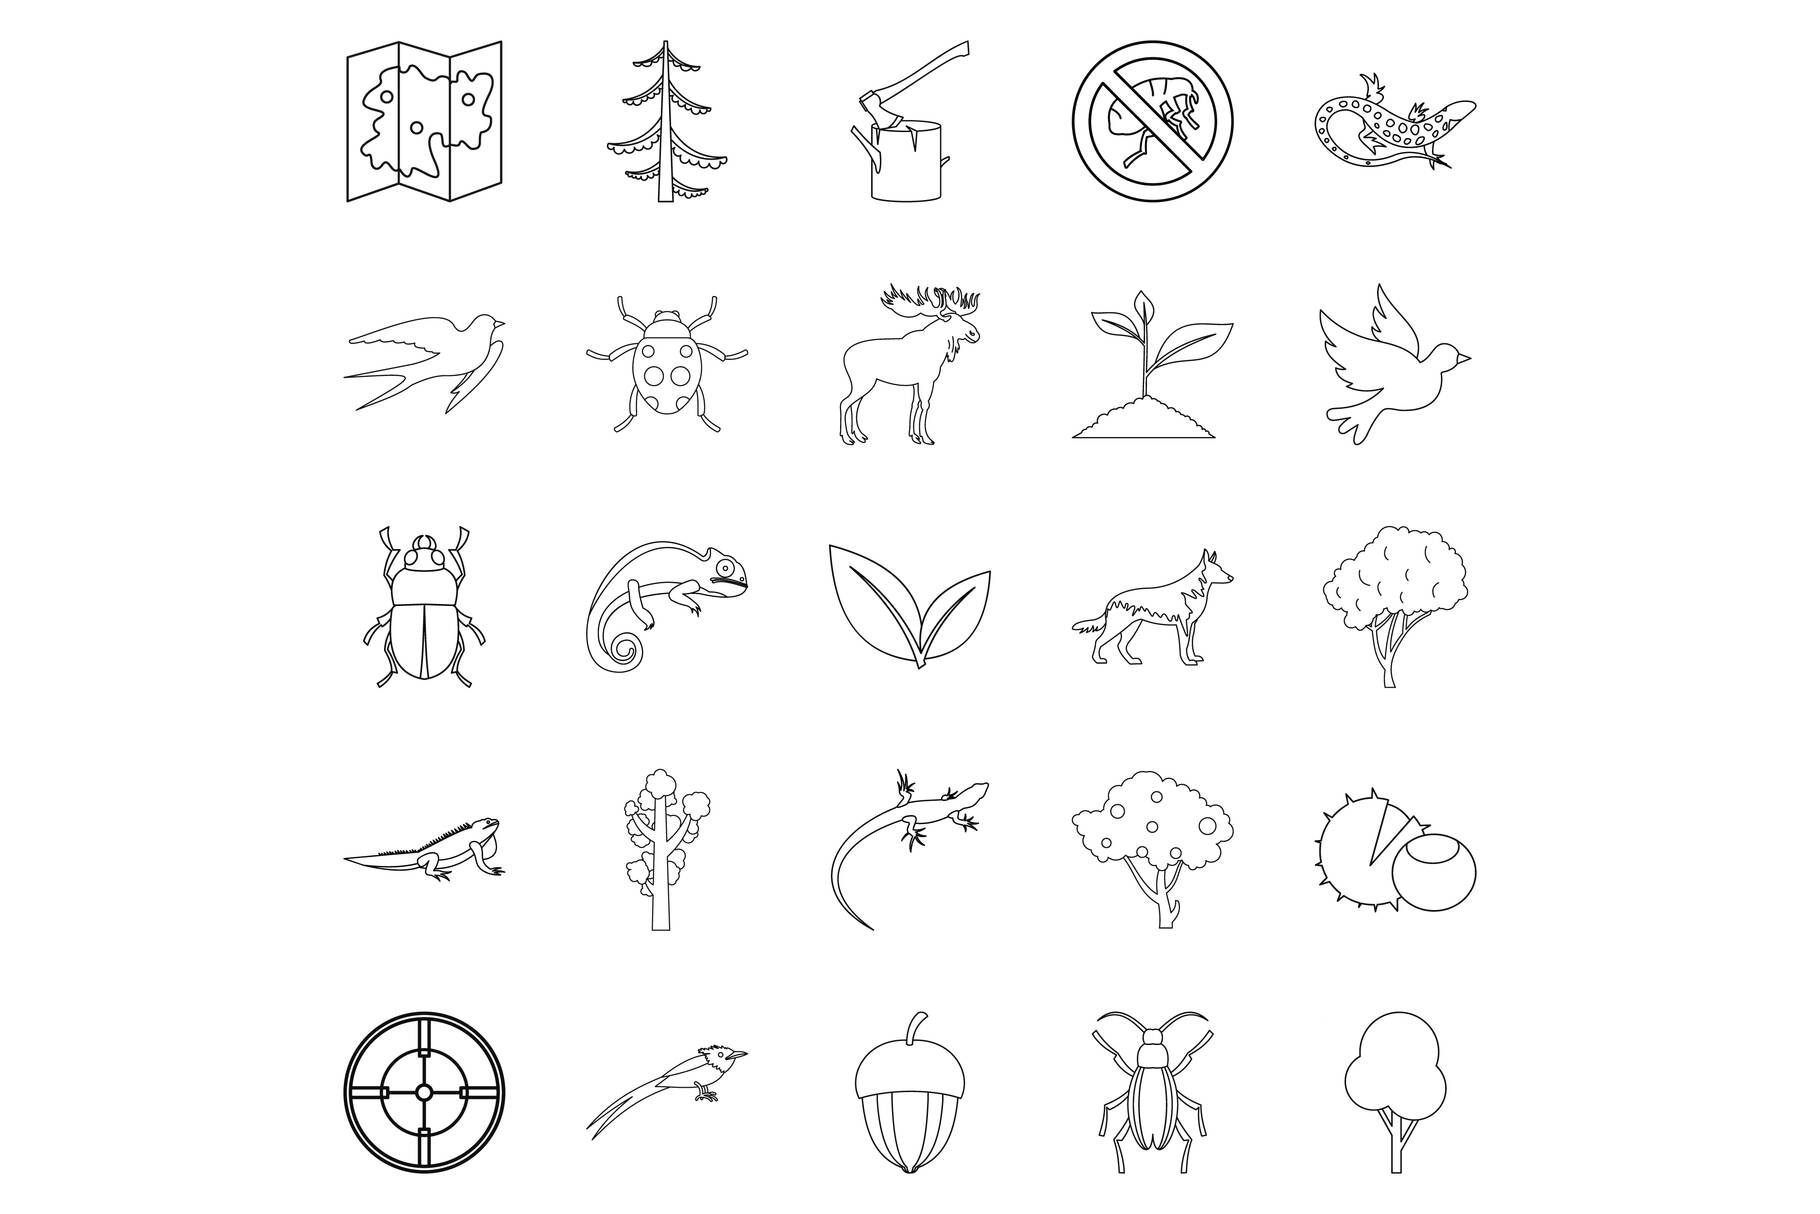 Locality icons set, outline style example image 1